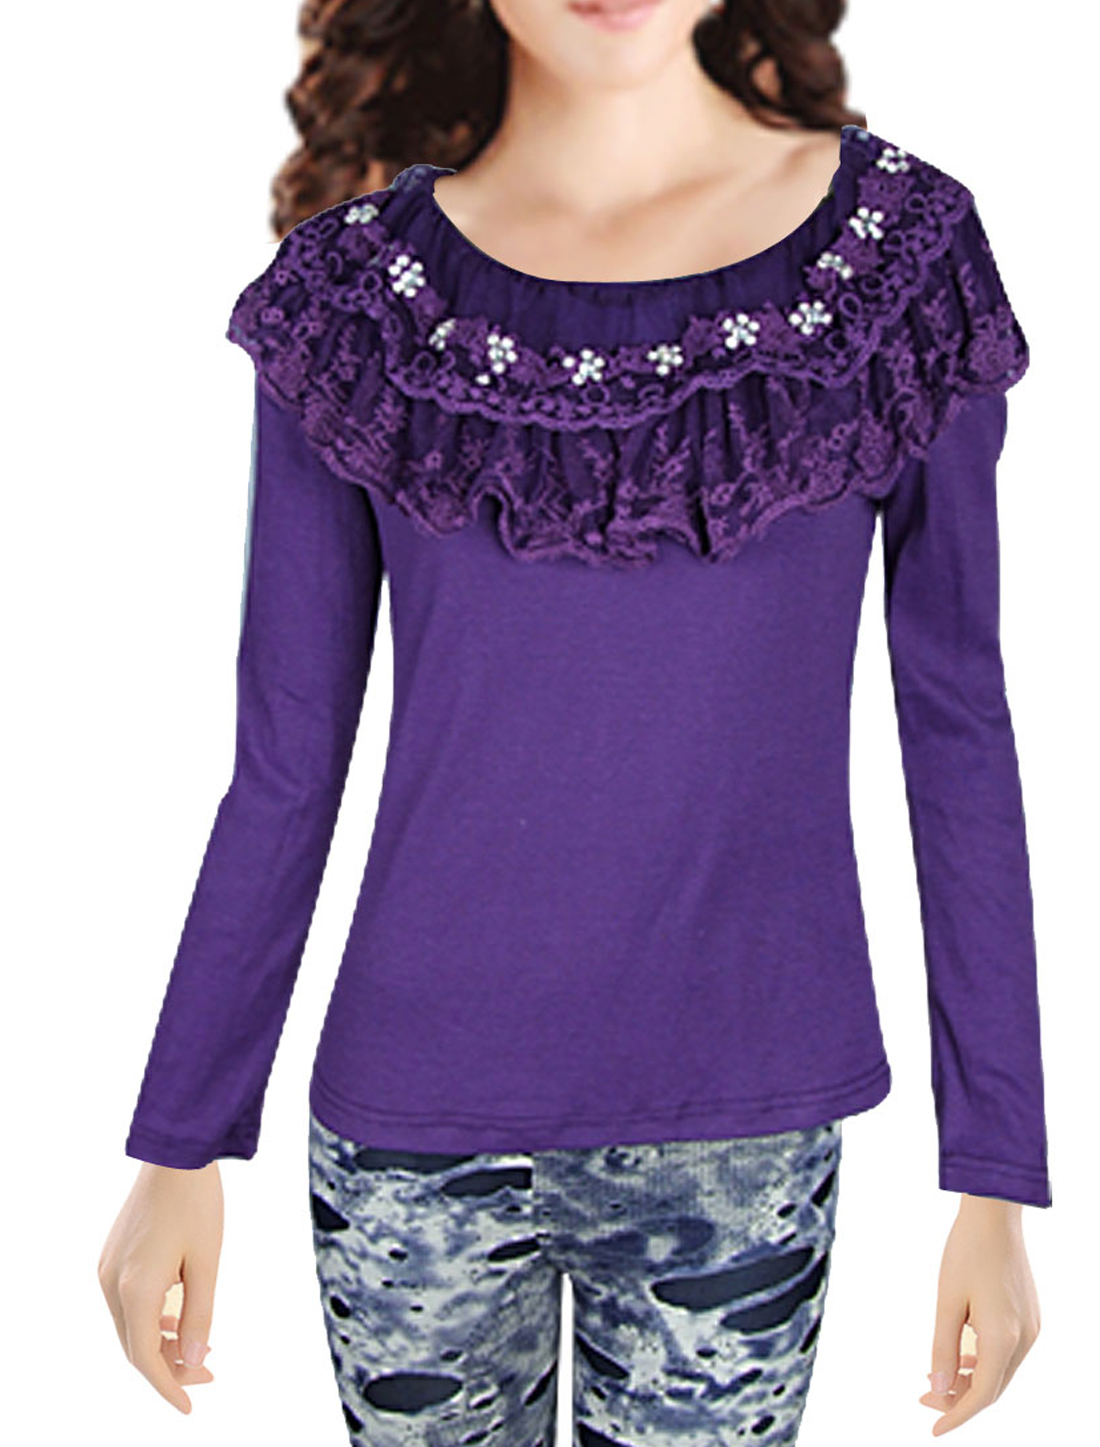 Ladies Two Layers Lace Round Neck Long Sleeve Purple Shirt XS